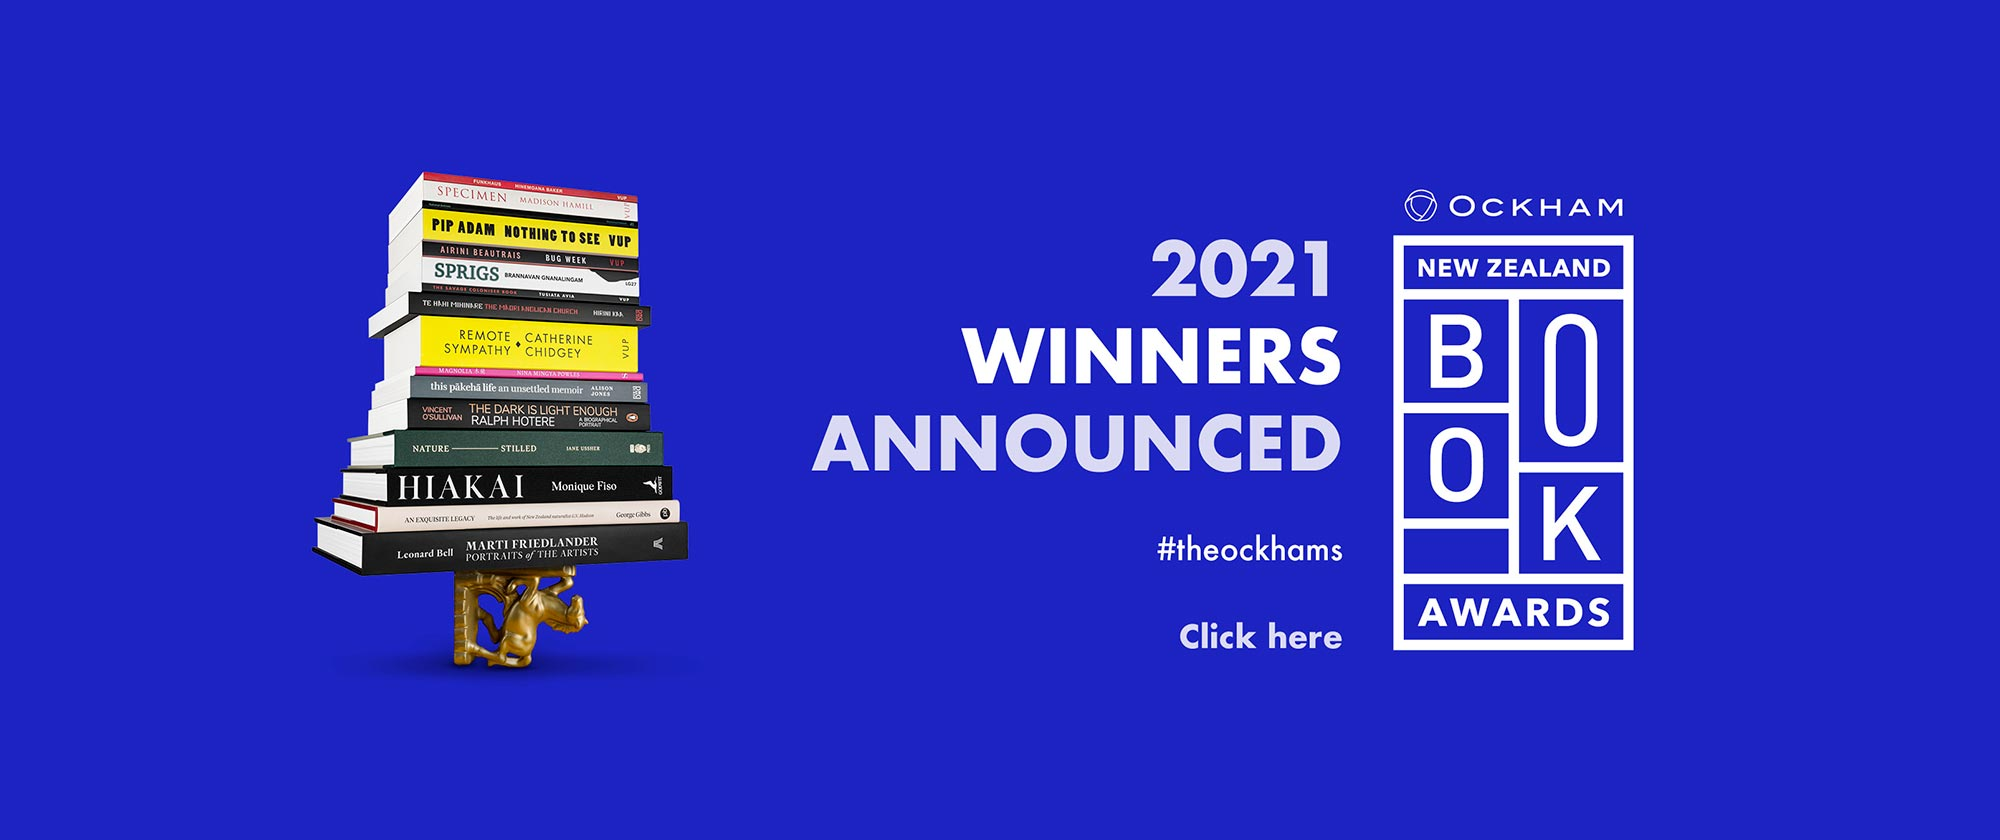 Winners announced - Click here